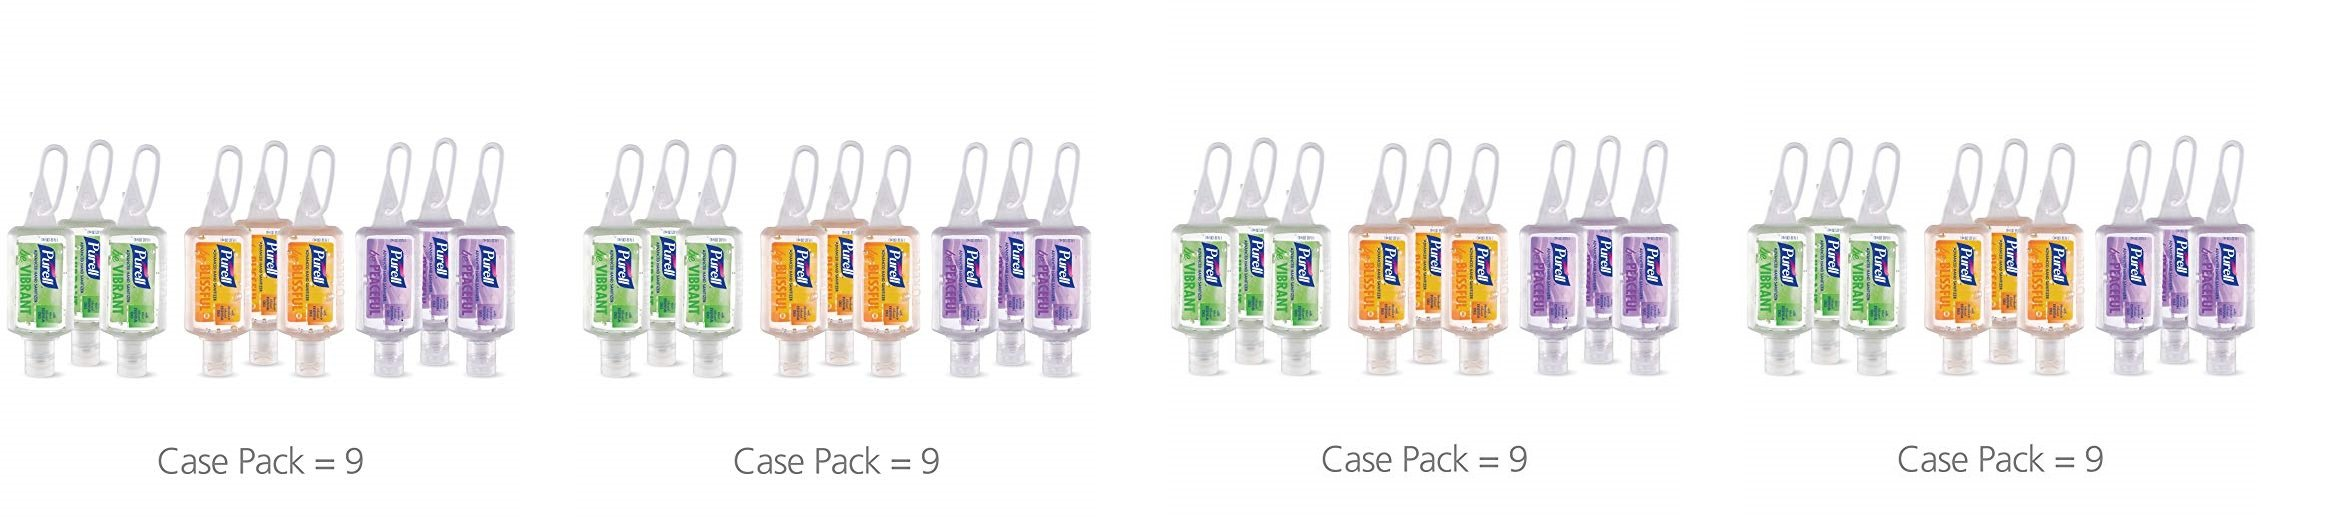 Purell 3900-09-ECME17 Advanced Hand Sanitizer Essentials Portable Bottle - Infused with Essential Oils, 1oz. Travel Sized Jelly Wrap Bottles (4 X Pack of 9)